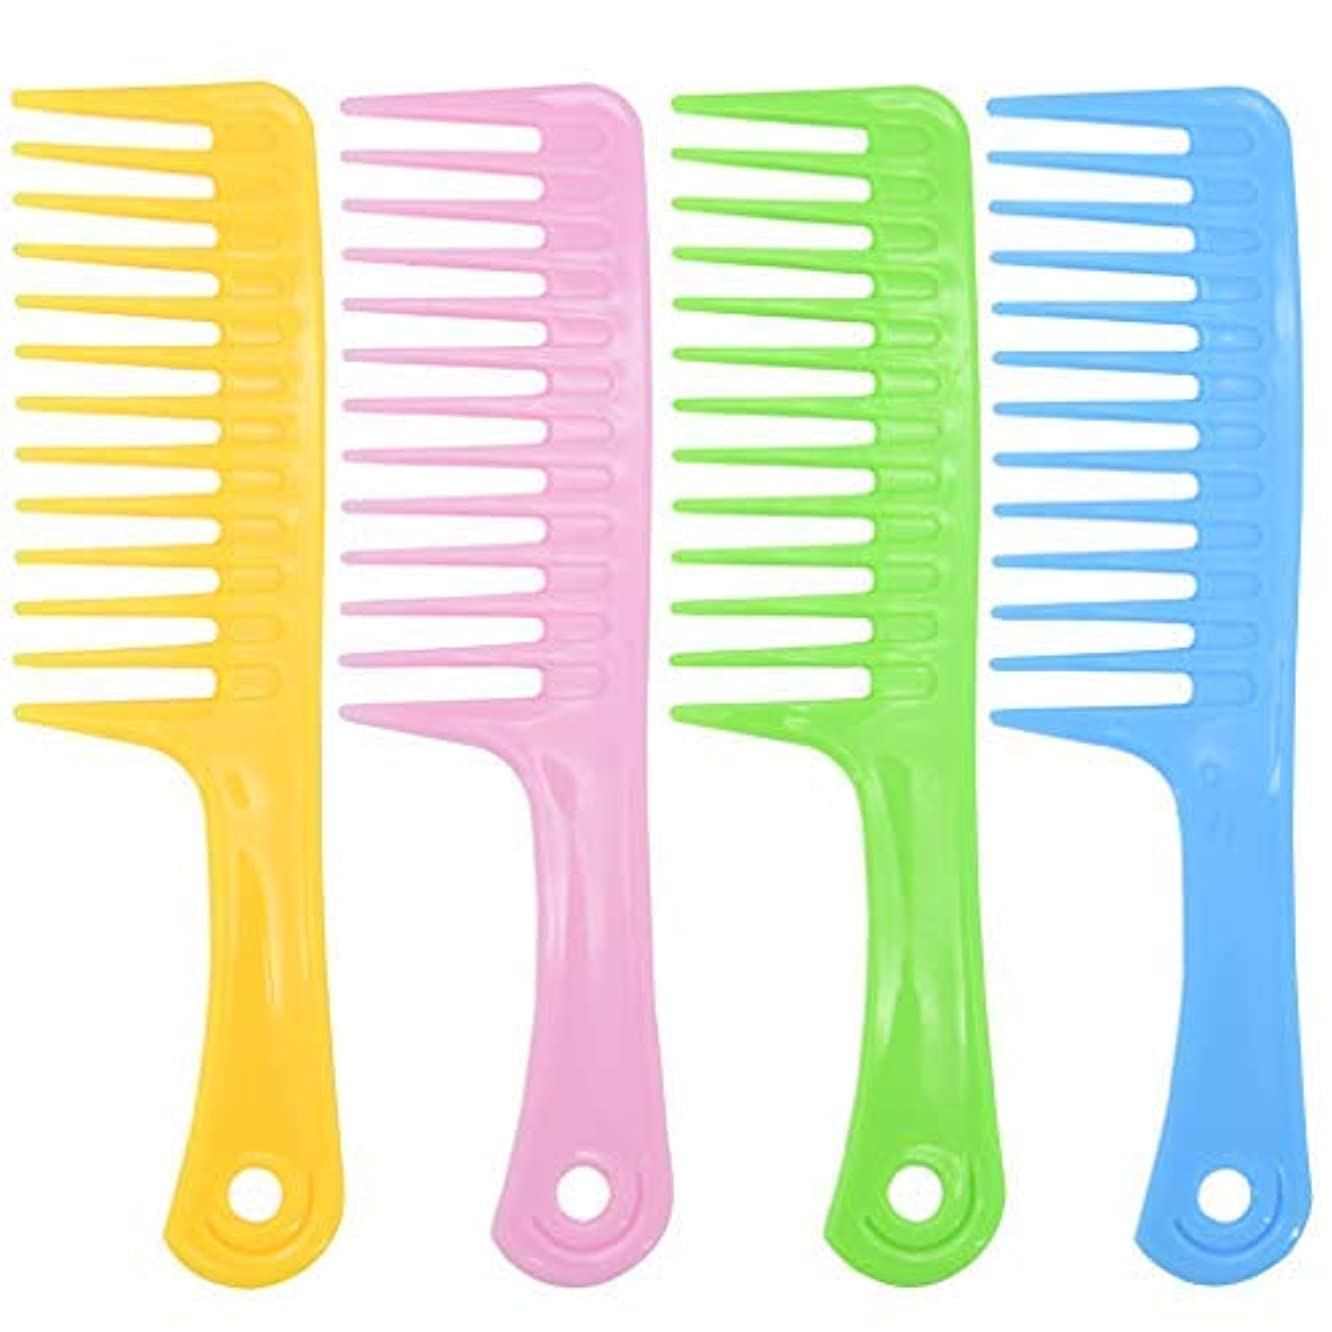 硬化する大きさ王位Ancefine 8 Pieces Large Tooth Detangle Comb Anti-static Wide Hair Salon Shampoo Comb for Thick,Long and Curl Hair...